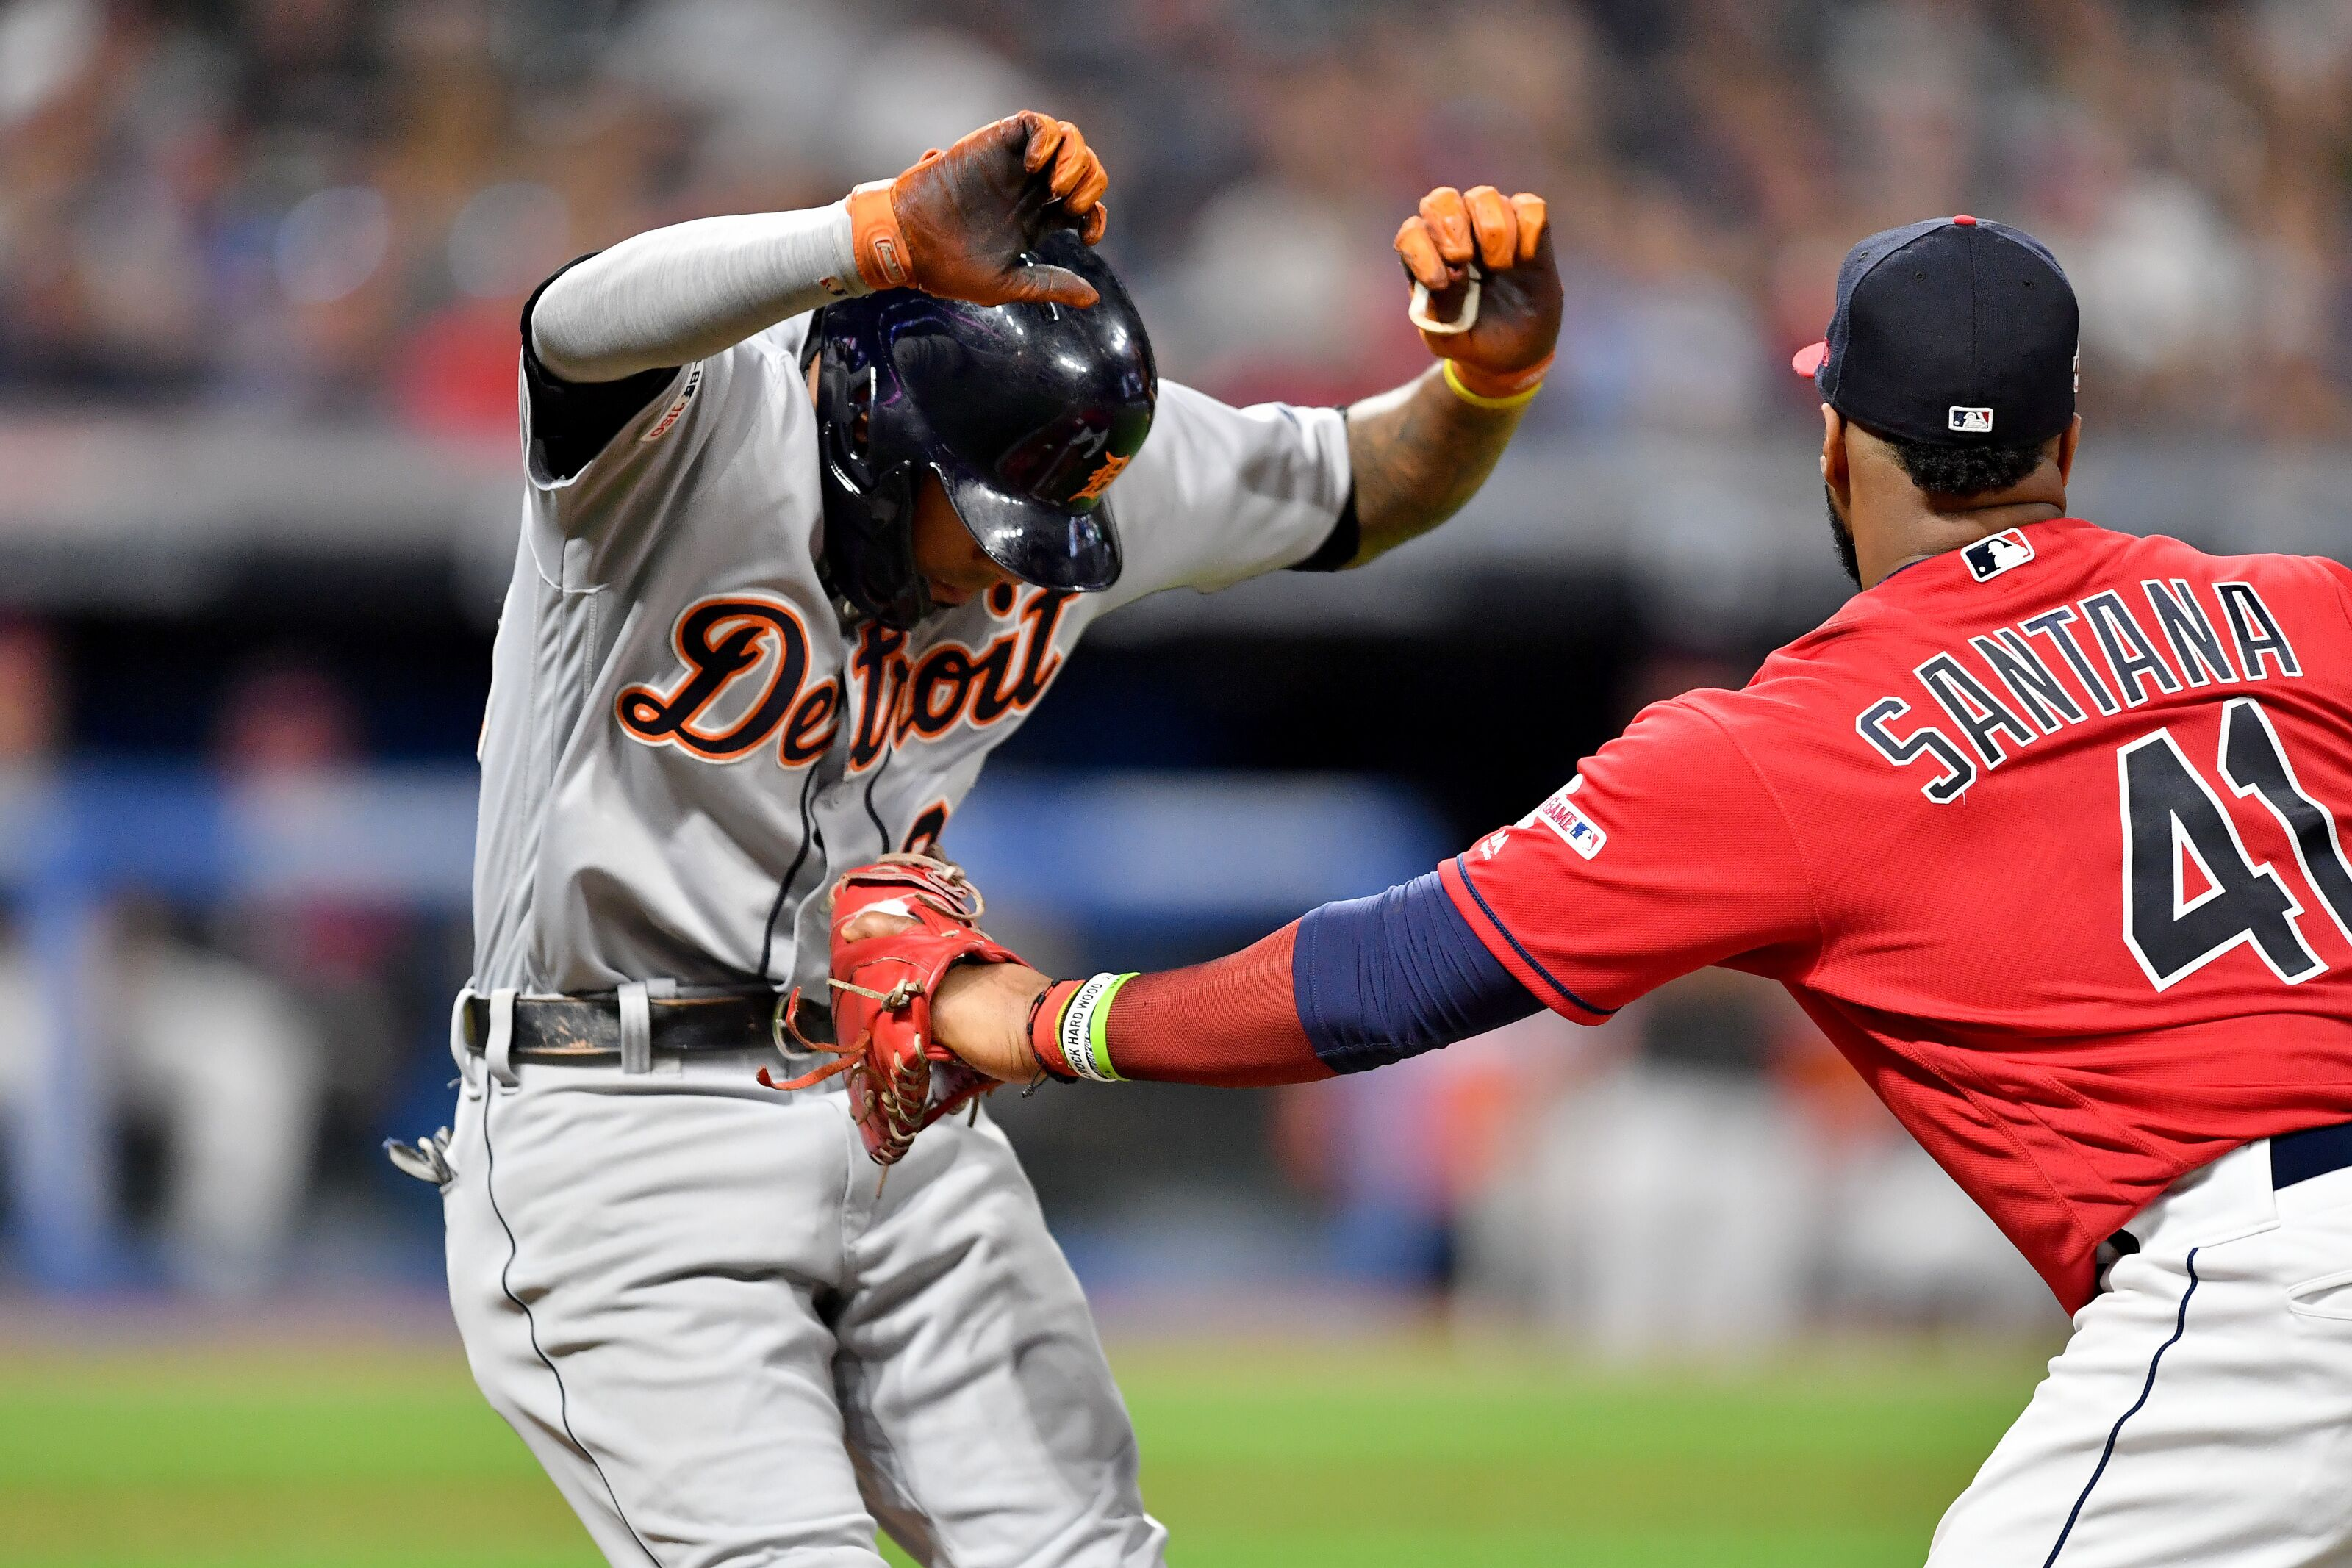 Detroit Tigers finish season series against Tribe with a loss